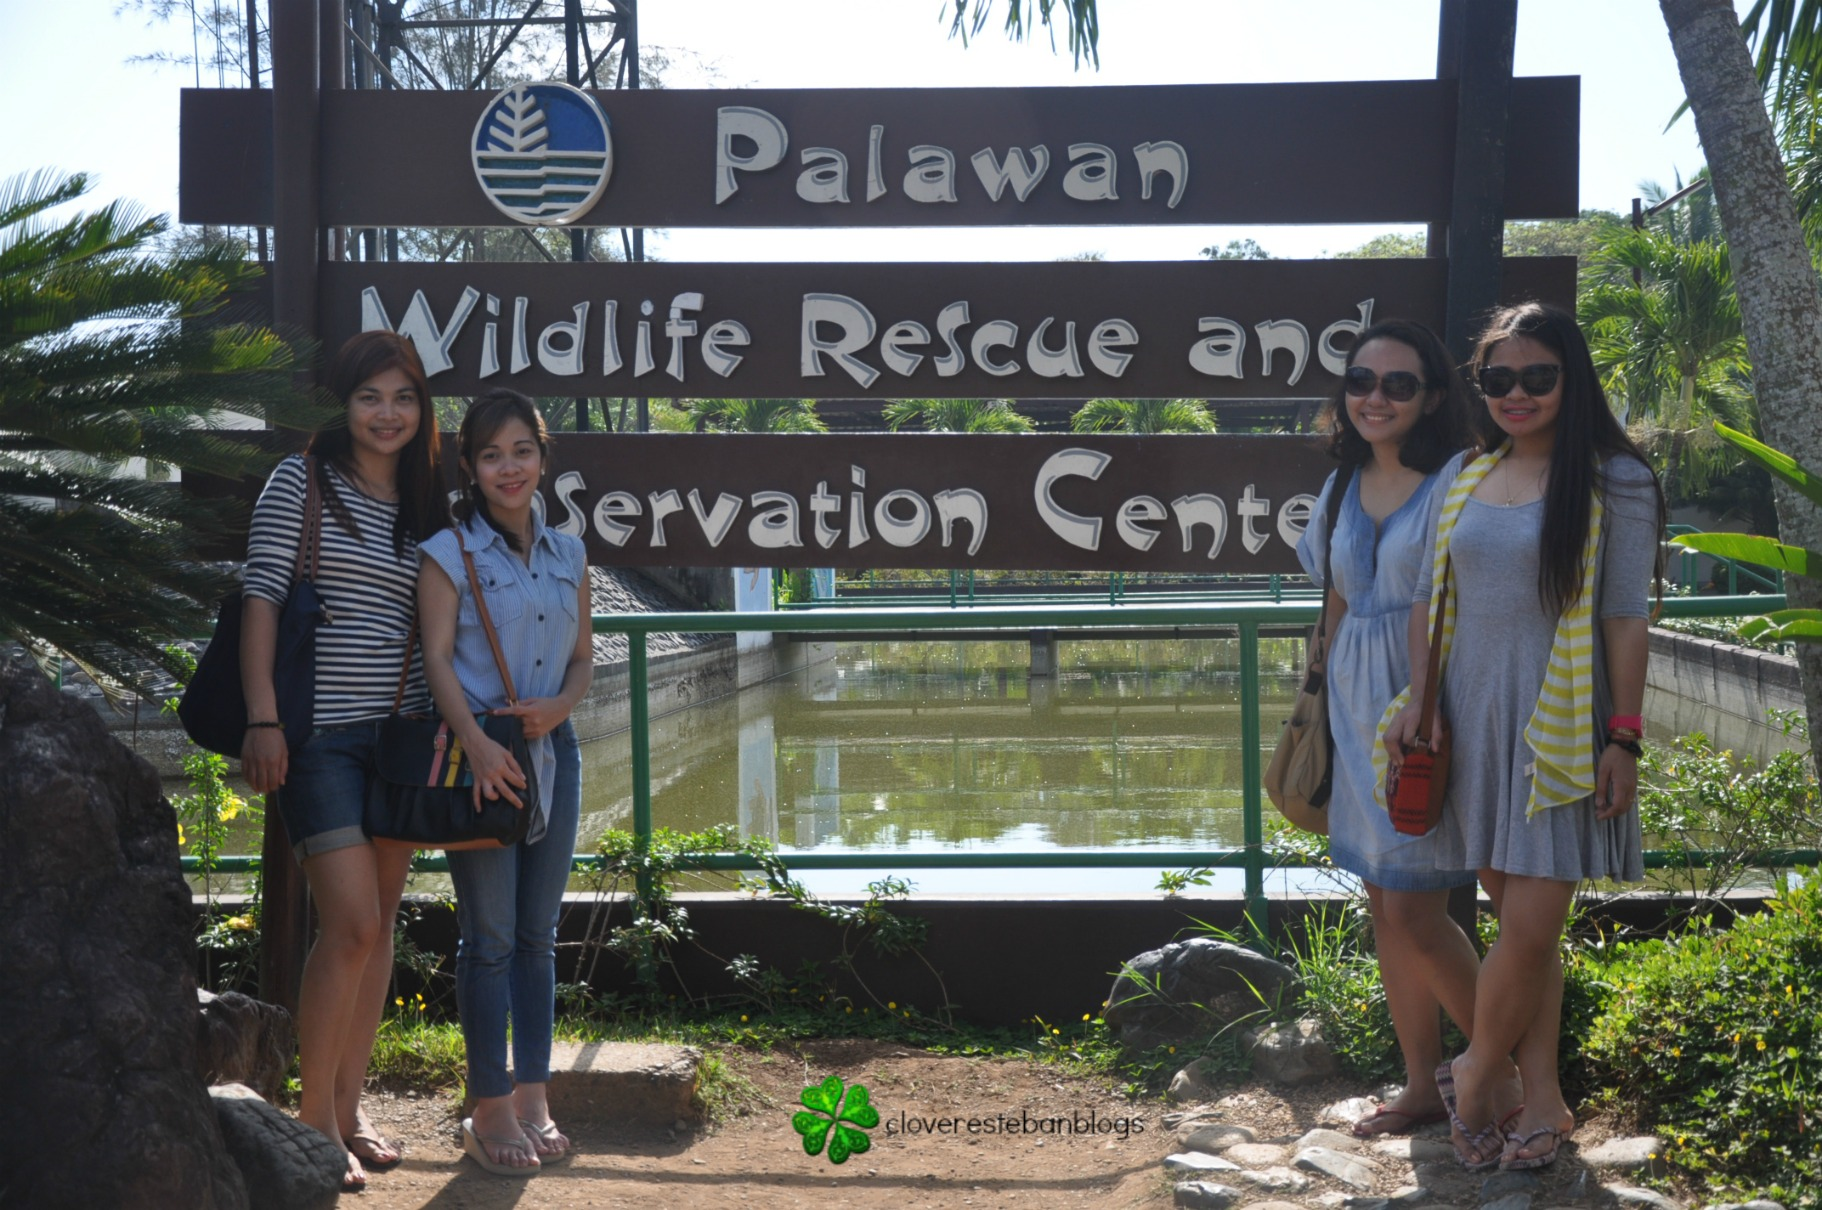 Palawan Wildlife Rescue & Conservation Center Puerto Princesa, PPS Day 4: City Tour- Crocodile Farm, Mitra's Ranch, Baker's Hill ...